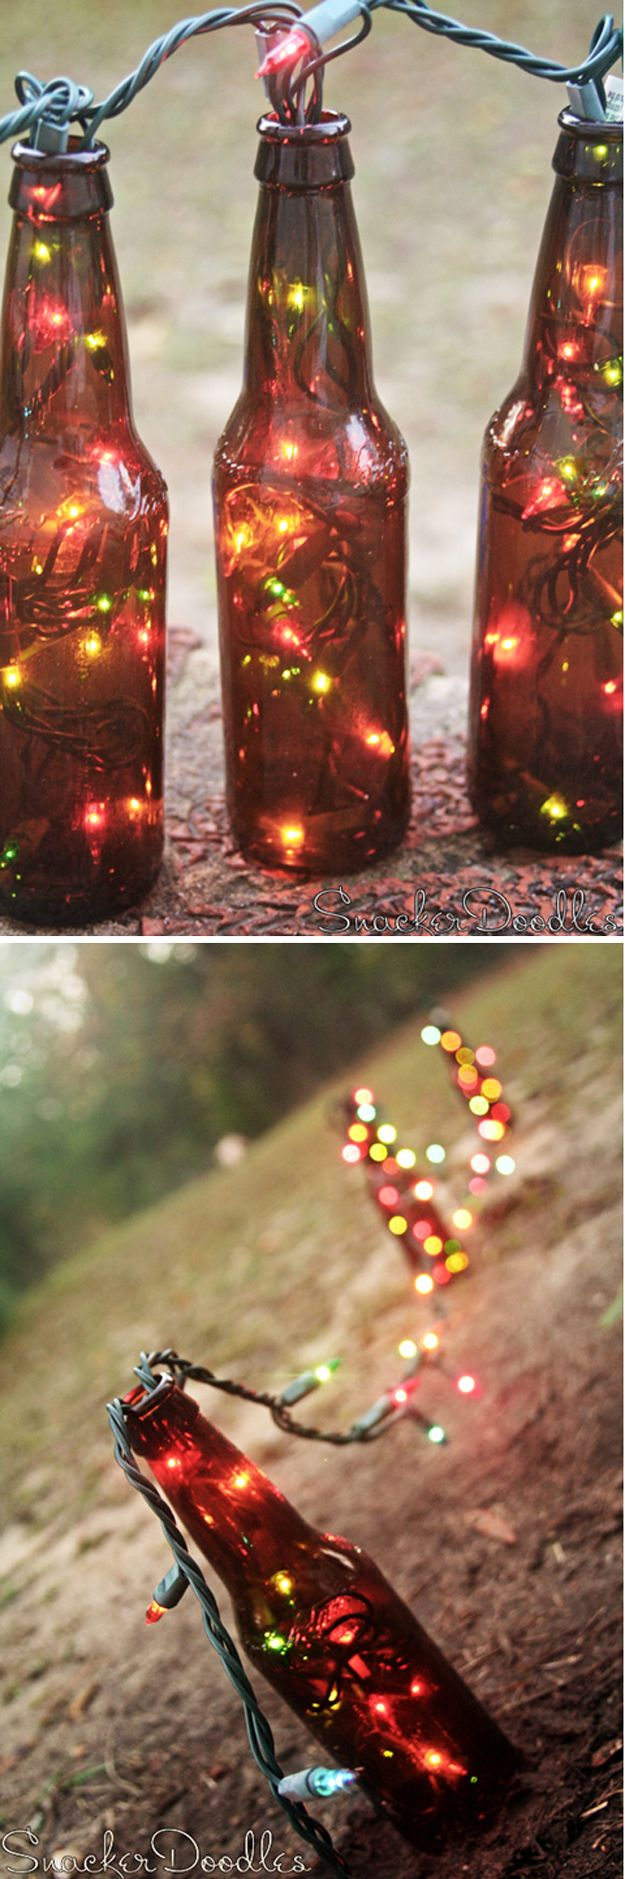 17 Best ideas about Cut Beer Bottles on Pinterest Cutting bottles, Wine bottle cutting and ...